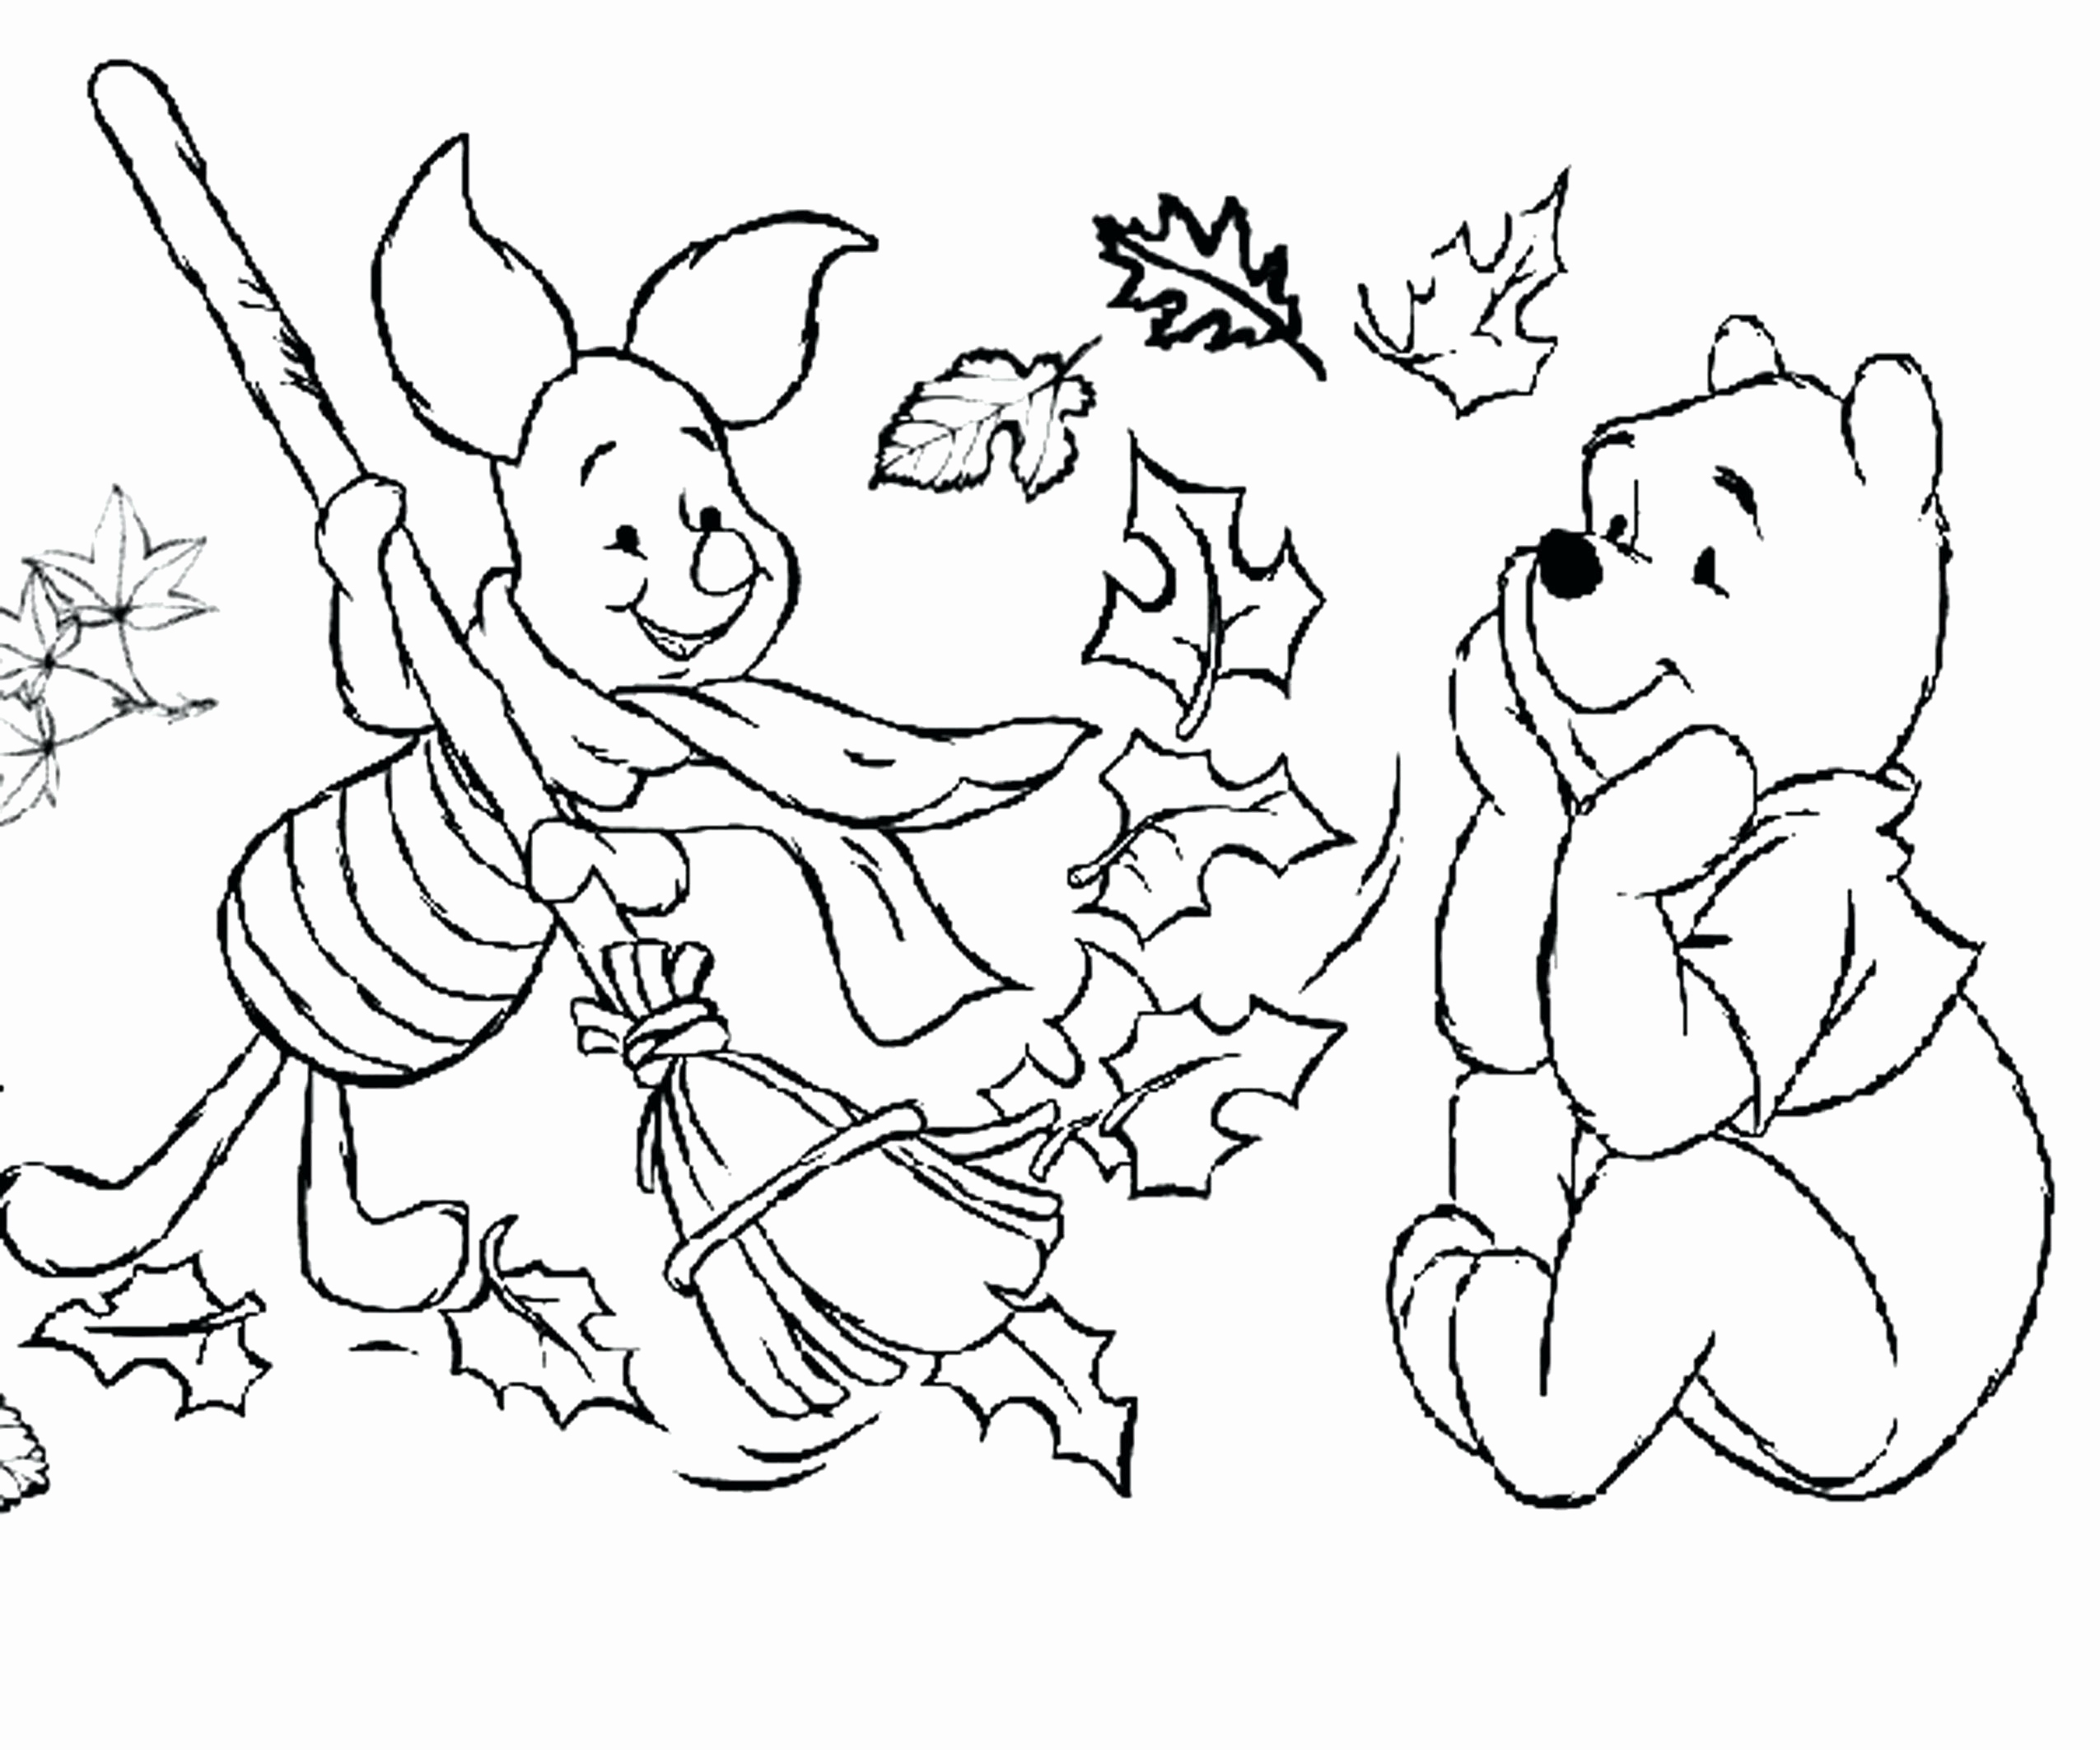 Animation Coloring Pages  Download 20l - Save it to your computer